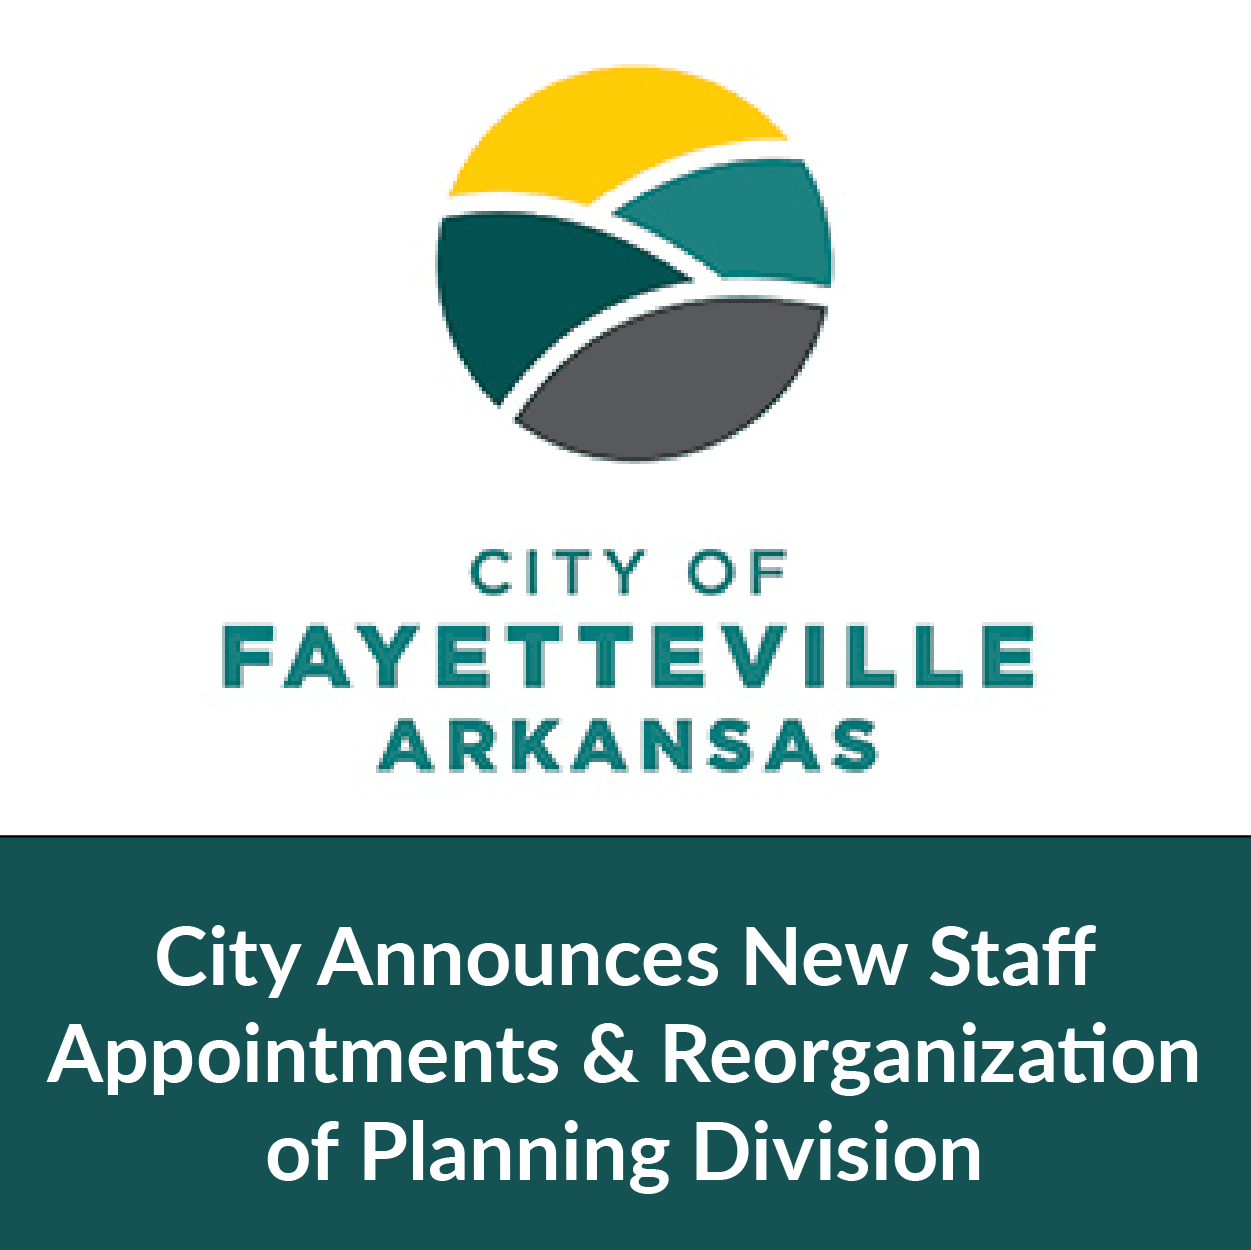 City of Fayetteville Announces New Staff Appointments and Reorganization of its Planning Division